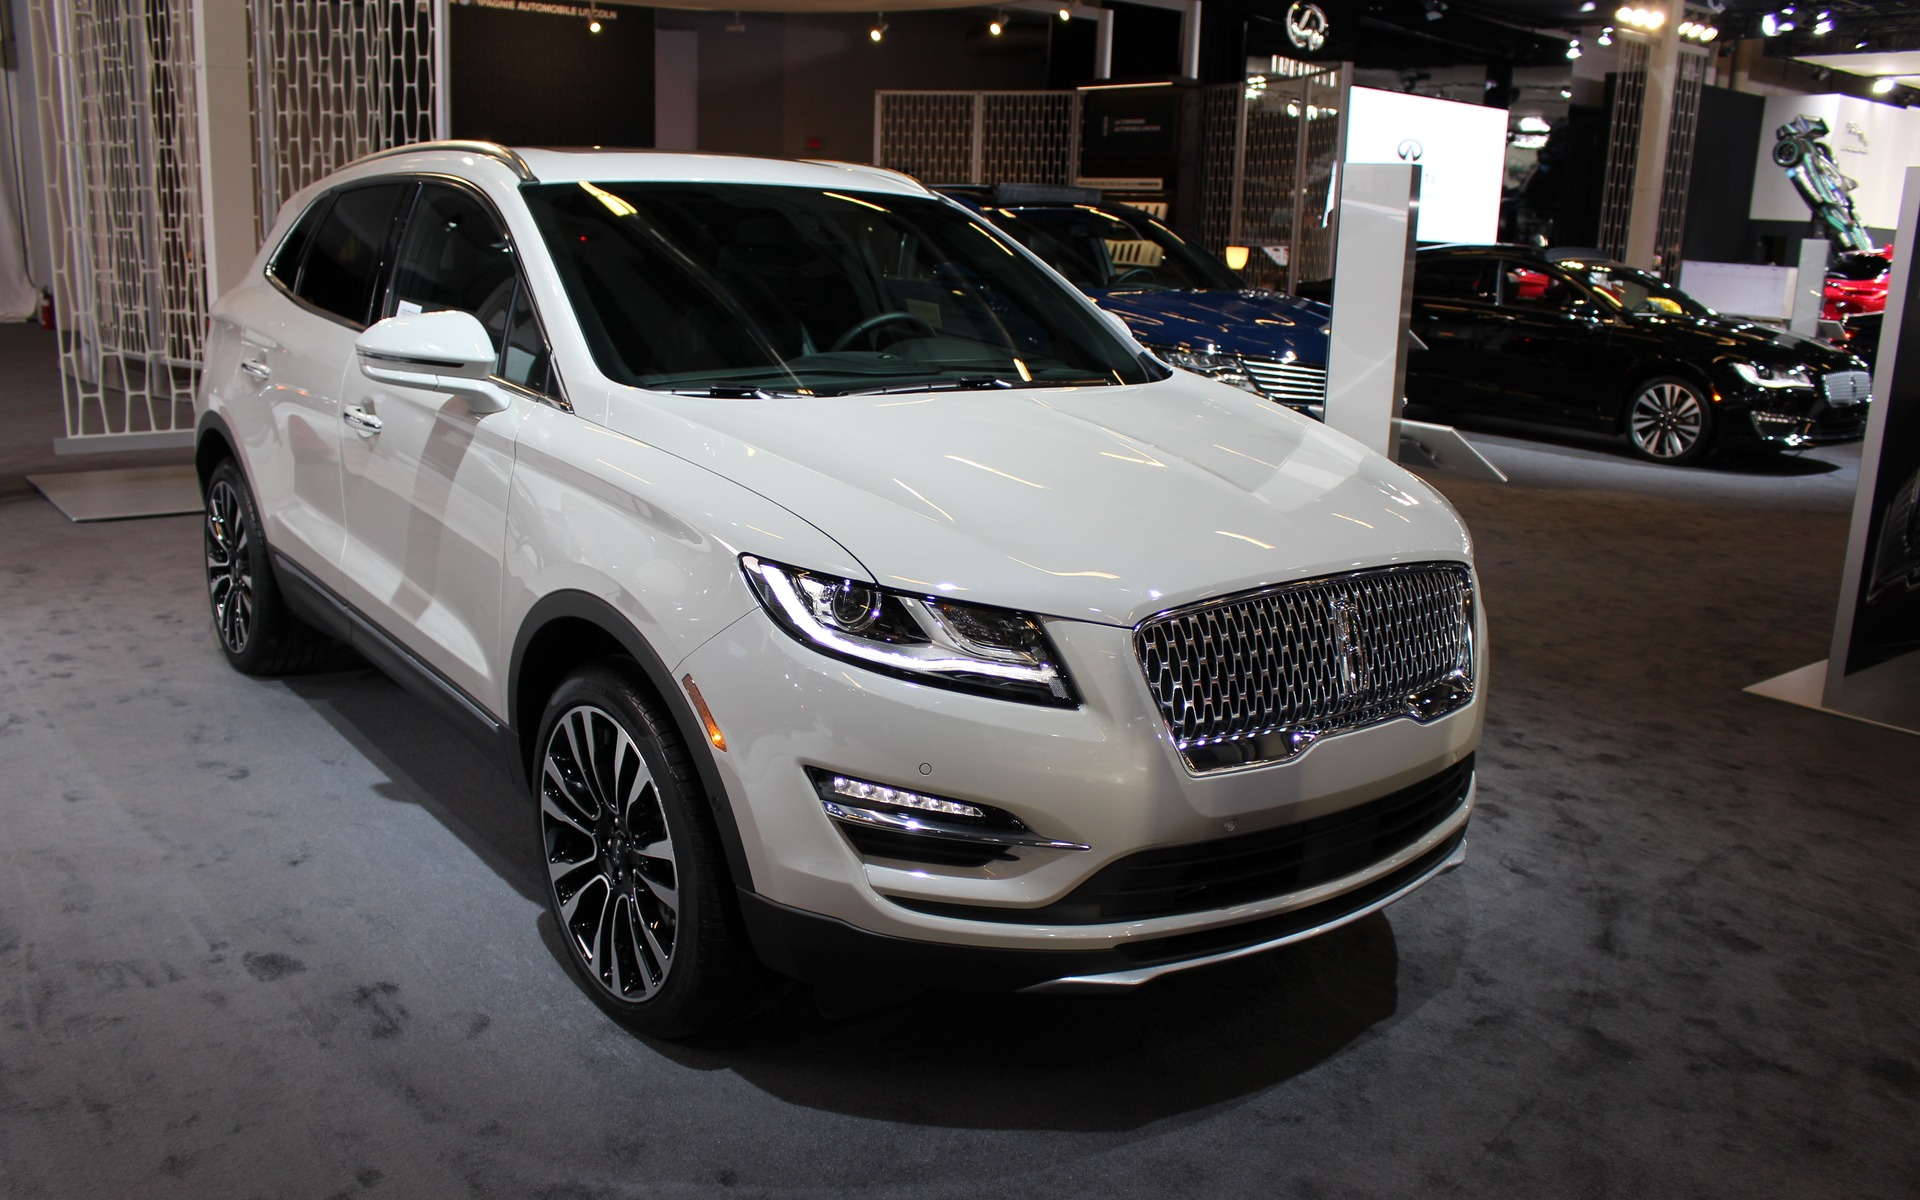 style mkc up to or company lincoln akozlesk home suv small kozleski park hr en amanda news amps new the angie motor stand com out connectivity